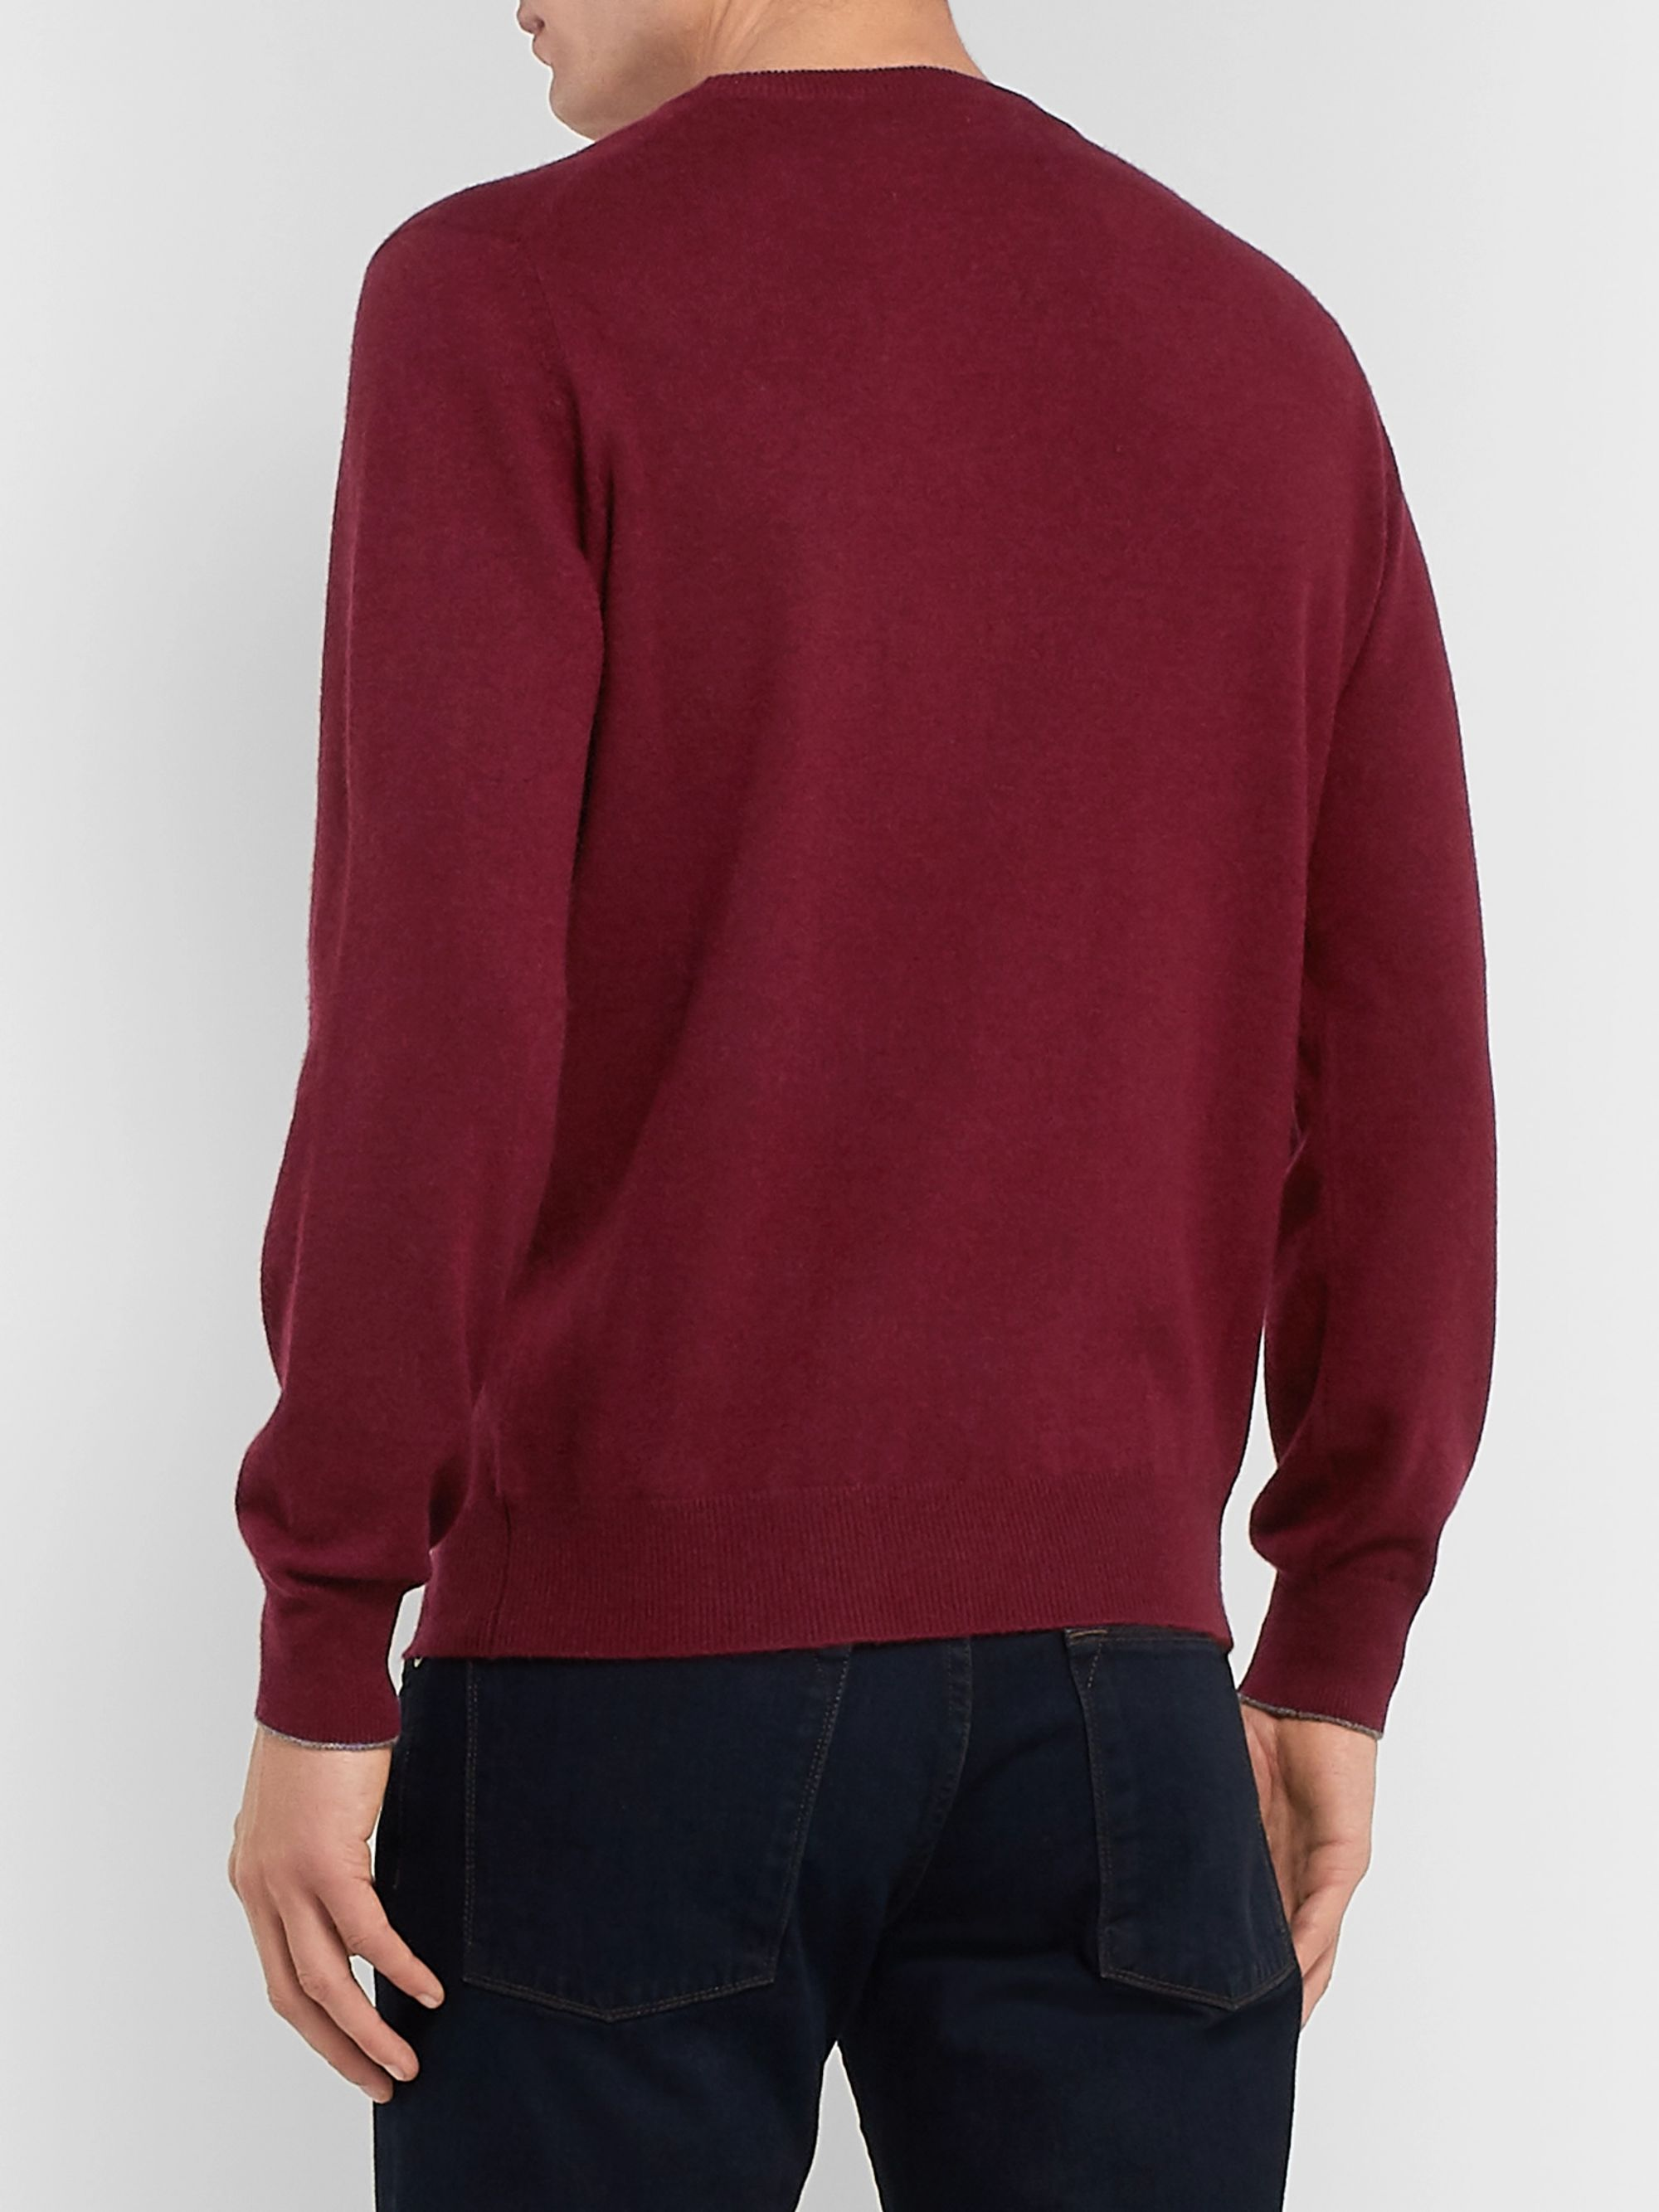 Brunello Cucinelli Contrast-Tipped Cashmere Sweater